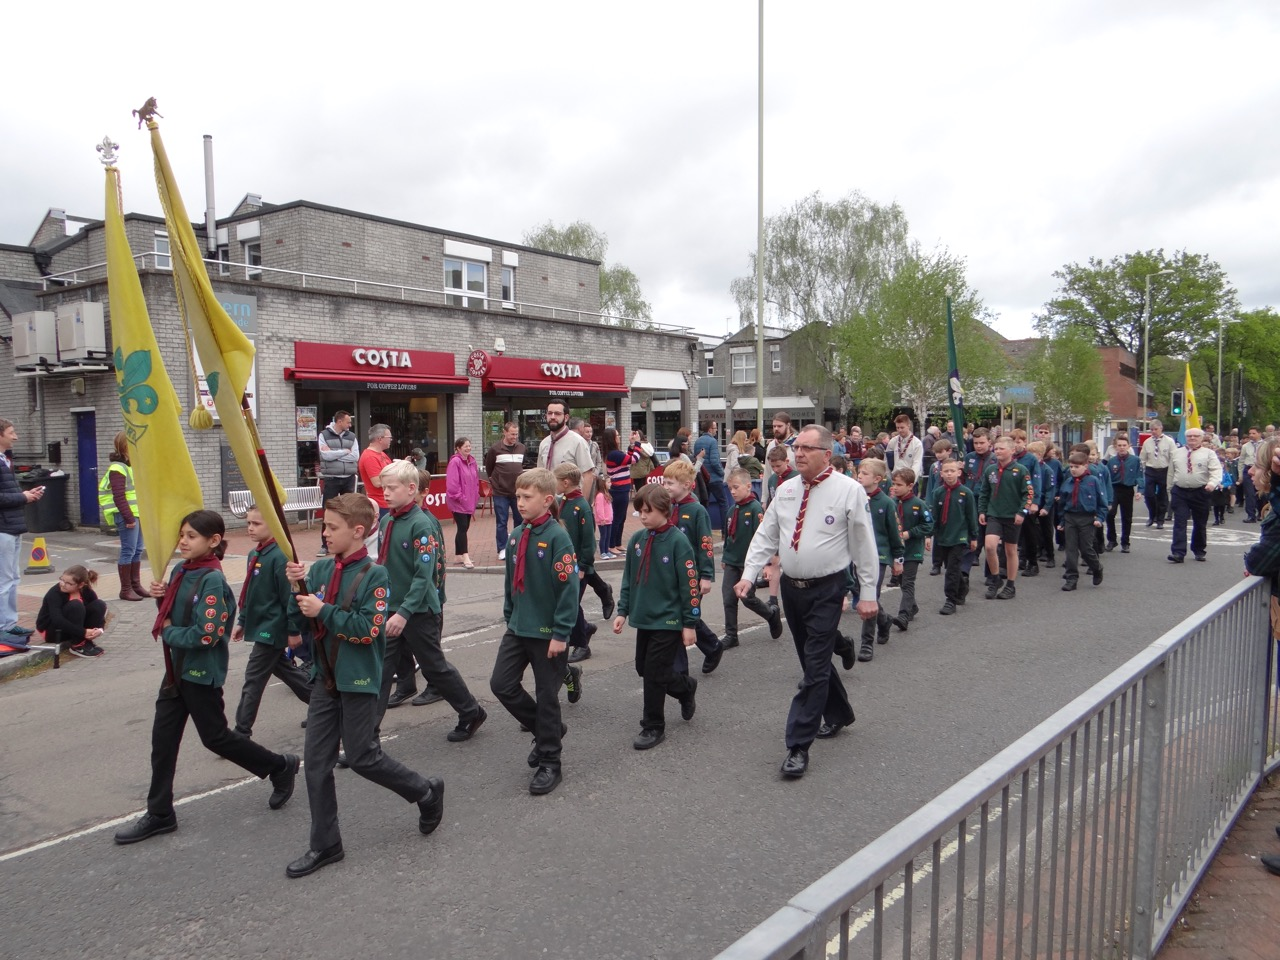 Chandler's Ford 3rd Scouts on St George's Day 2019. Image credit: Richard Doyle